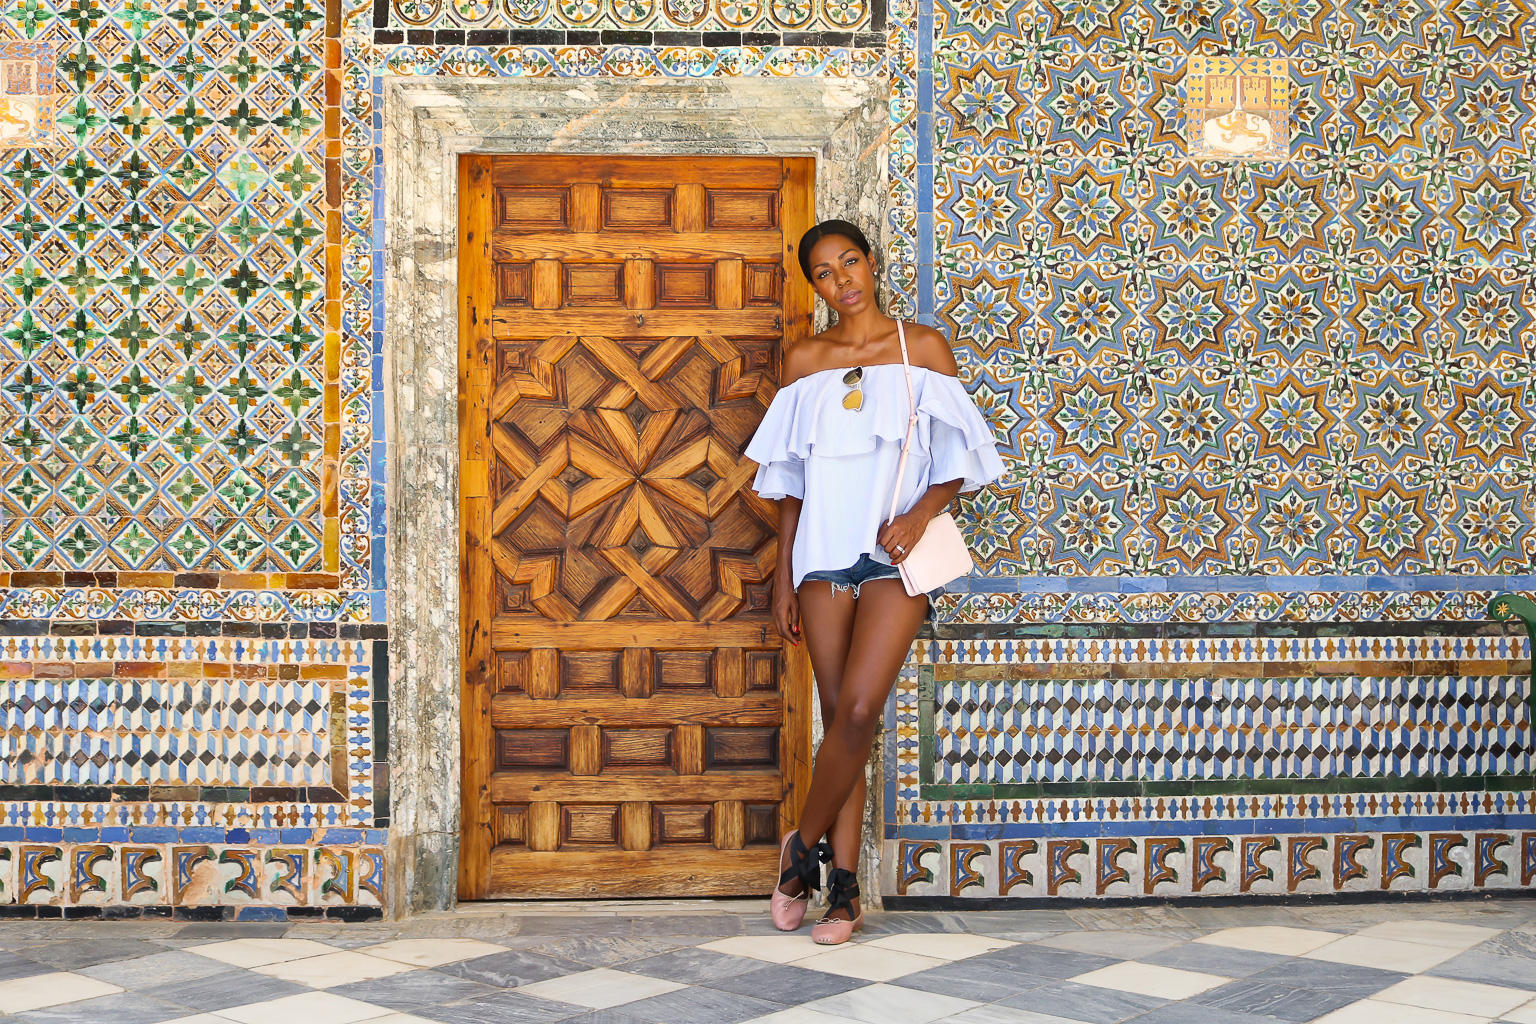 Sometimes, you don't need an itinerary to fully enjoy a new city - Seville, Spain